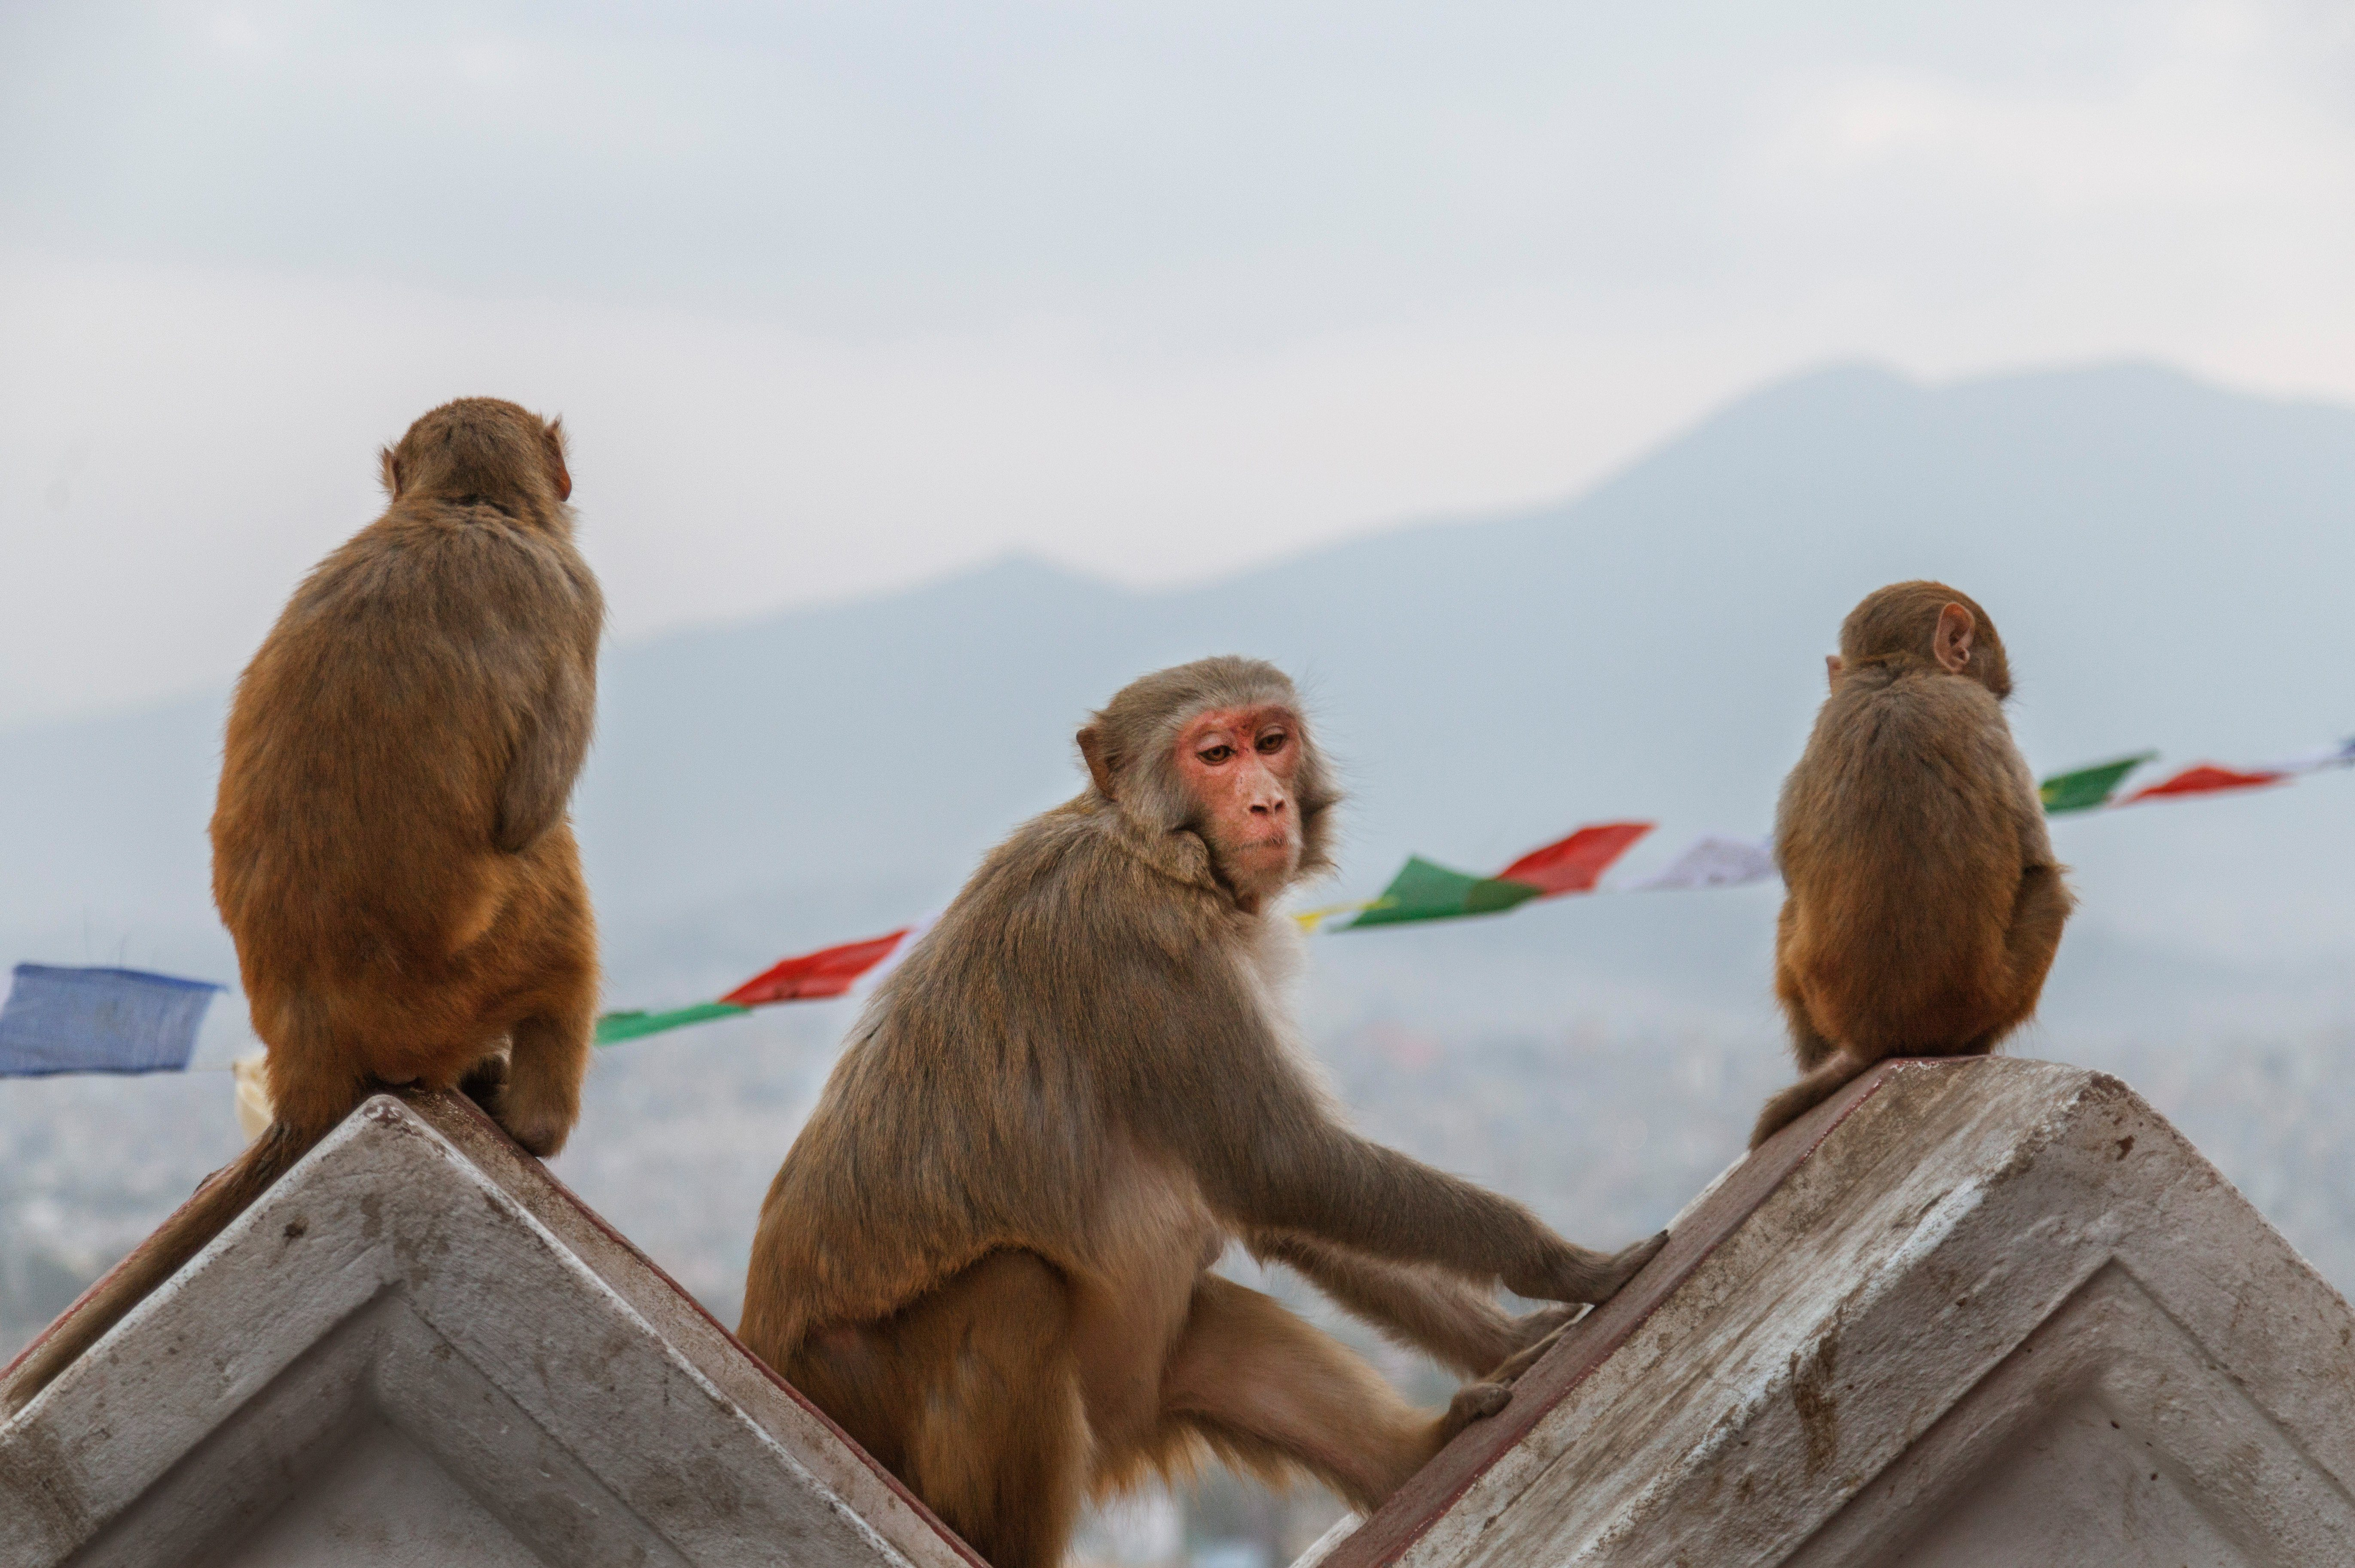 Macaque monkey sitting at the site of the Swayambhunath Temple (Monkey Temple), the background is a view of the city and its hills